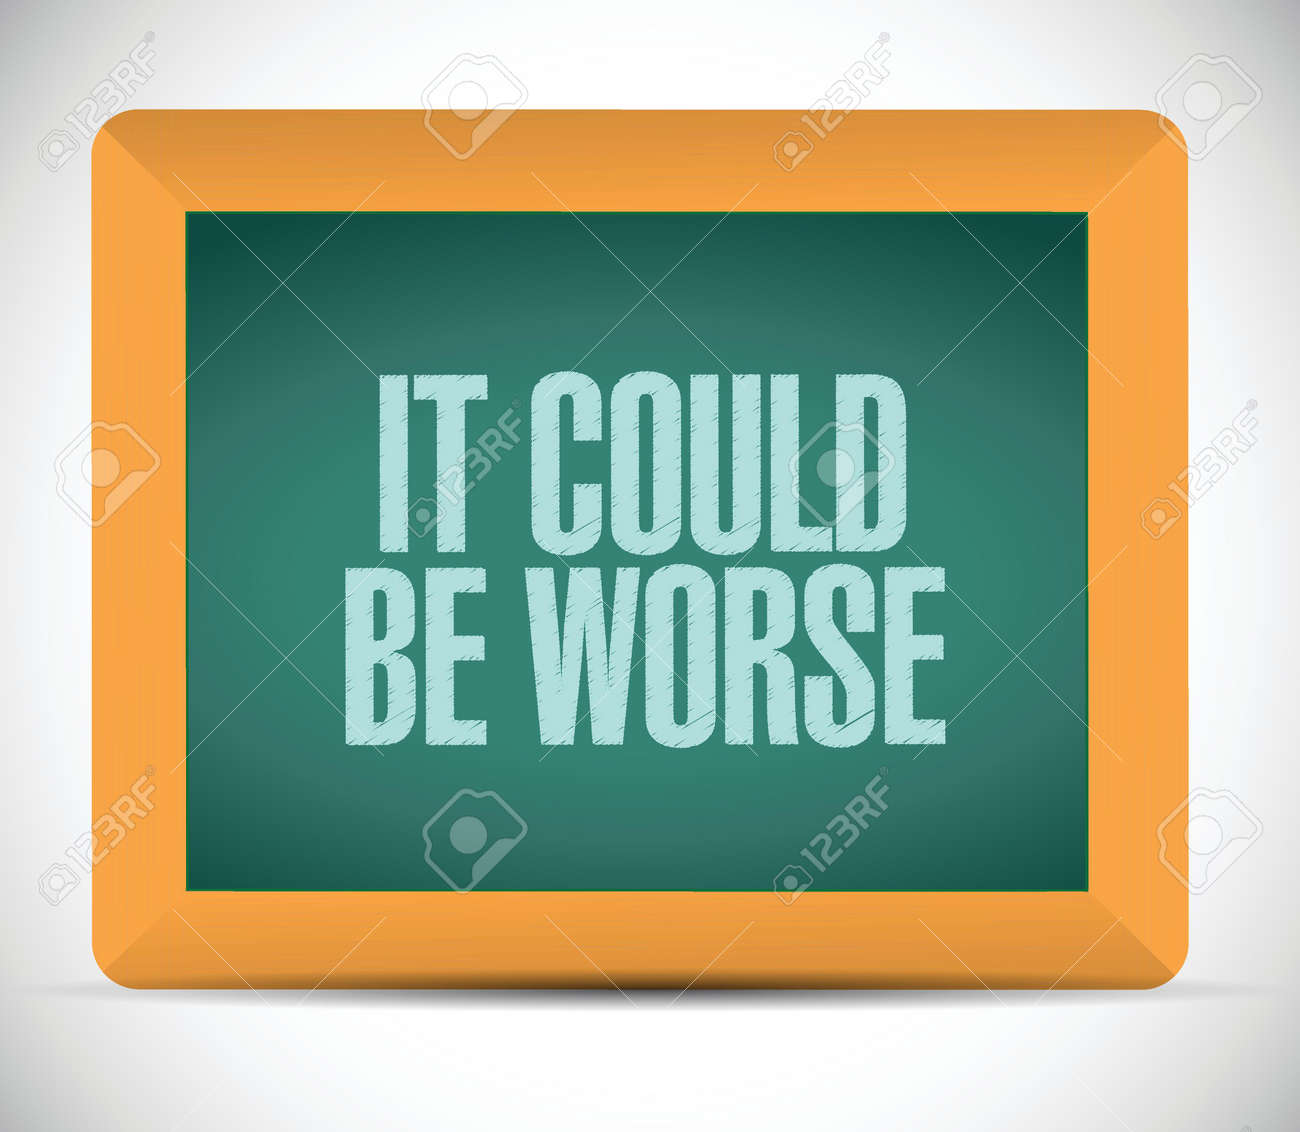 it could be worse message on a chalkboard illustration design over a white background Stock Vector - 26504155